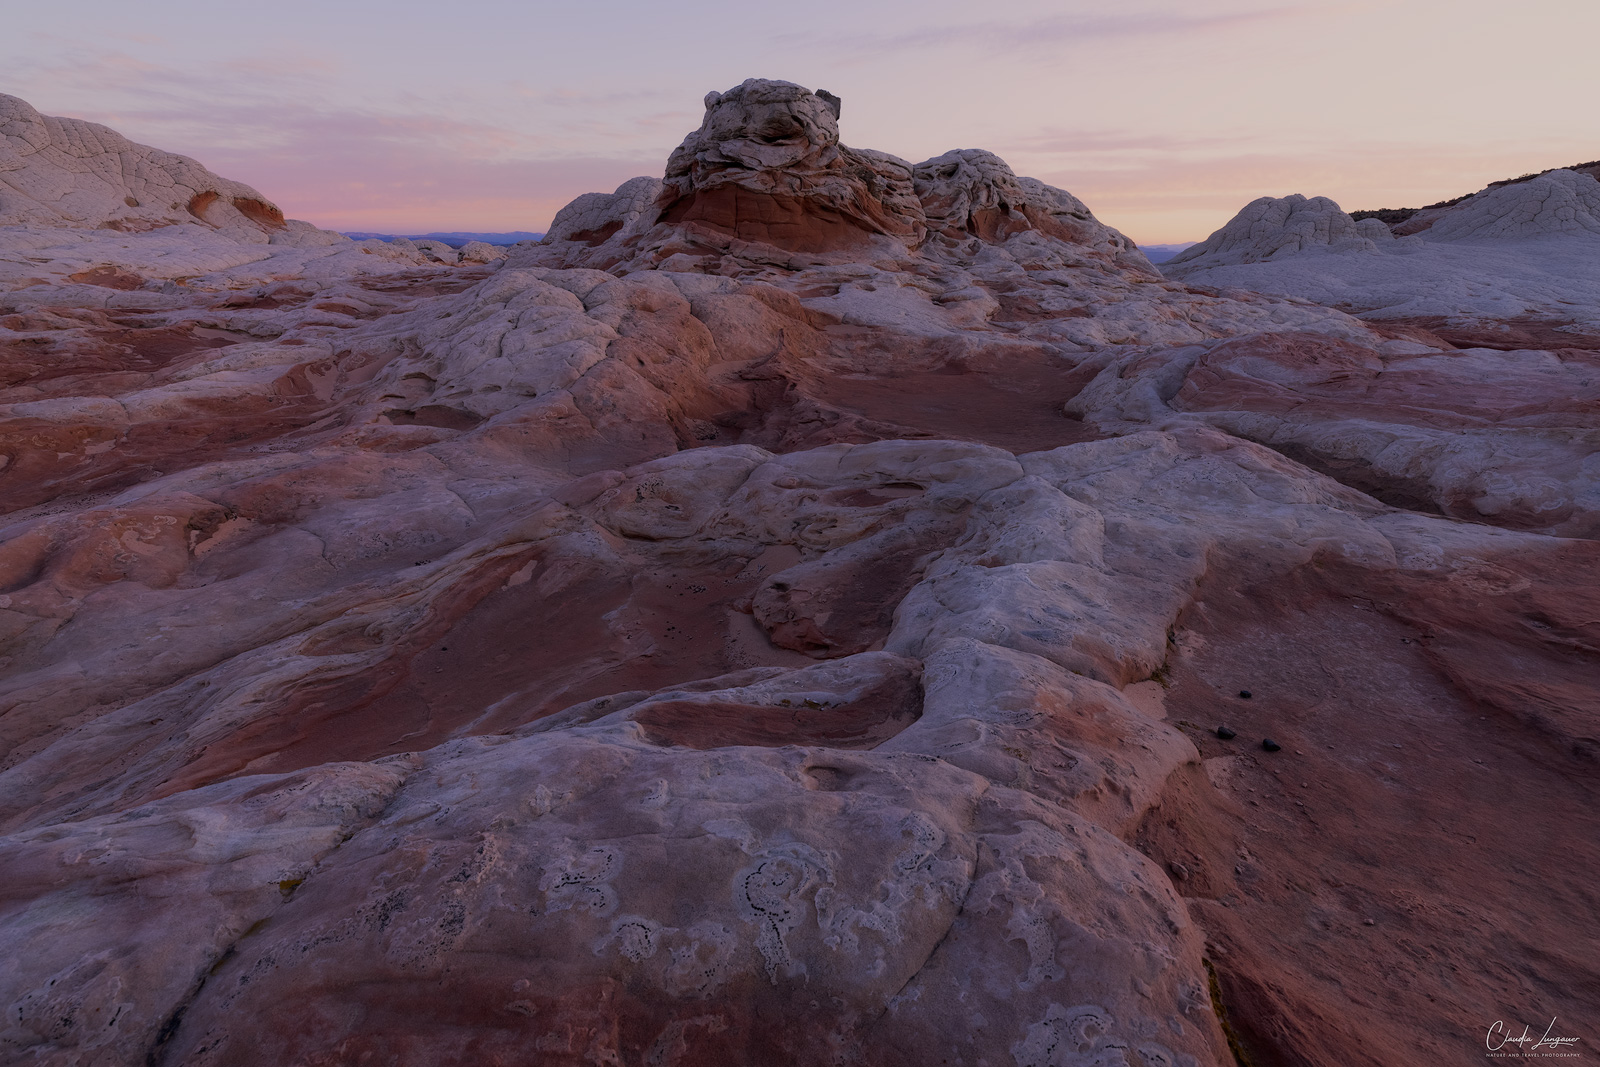 View of rock formations in White Pocket in Arizona at sunrise.